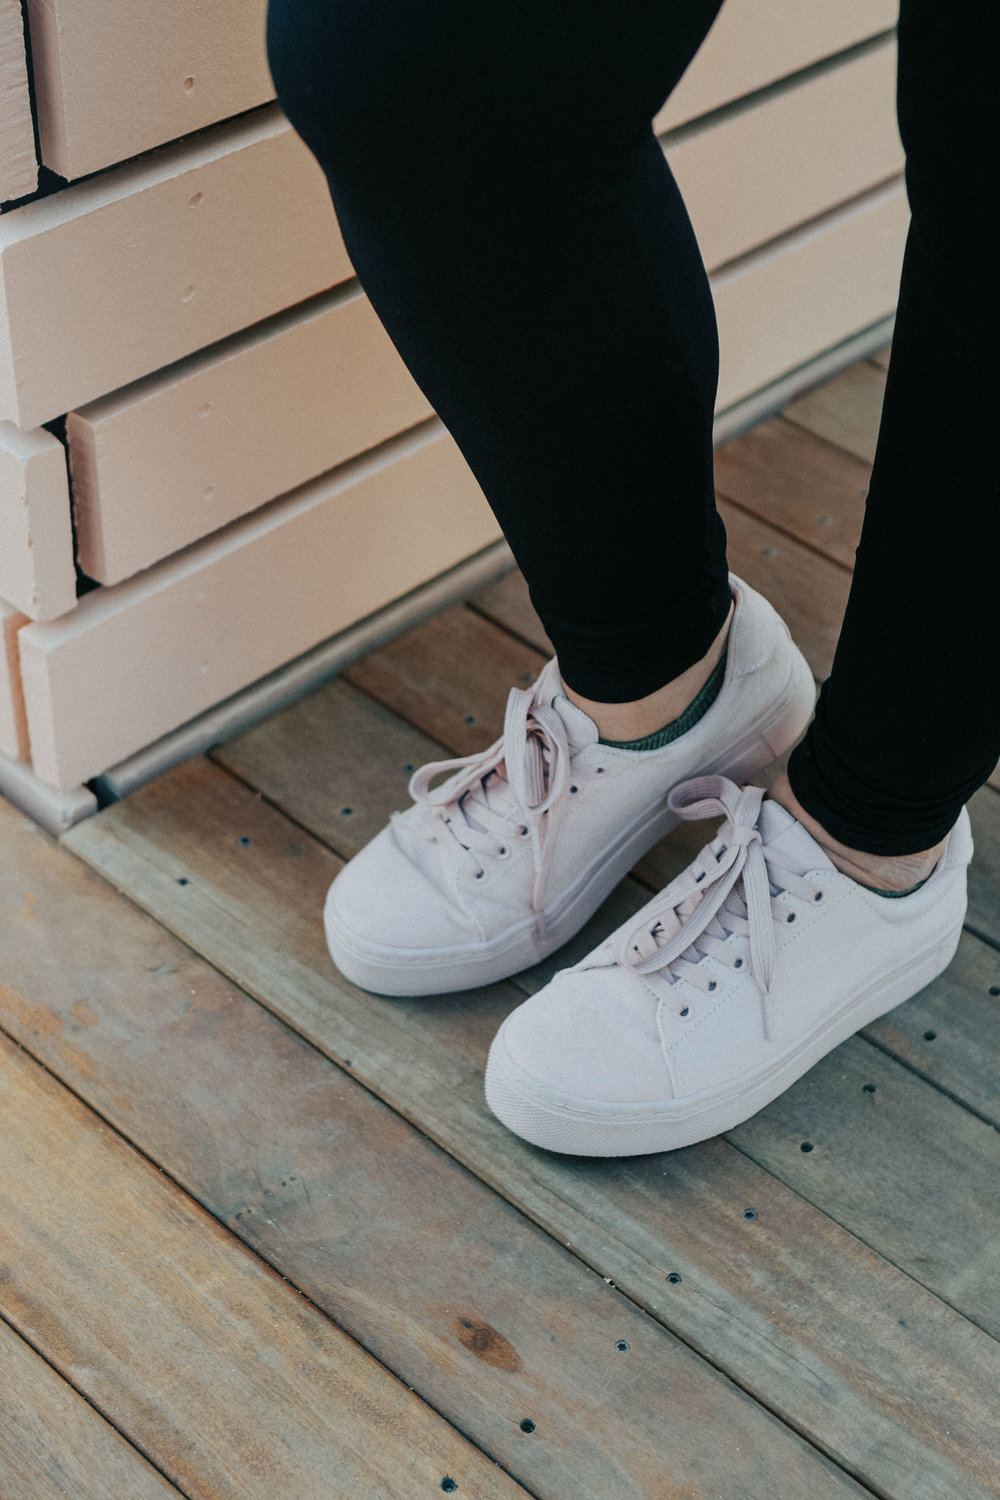 Blush sneakers from H&M;  they are super cute and under $30.